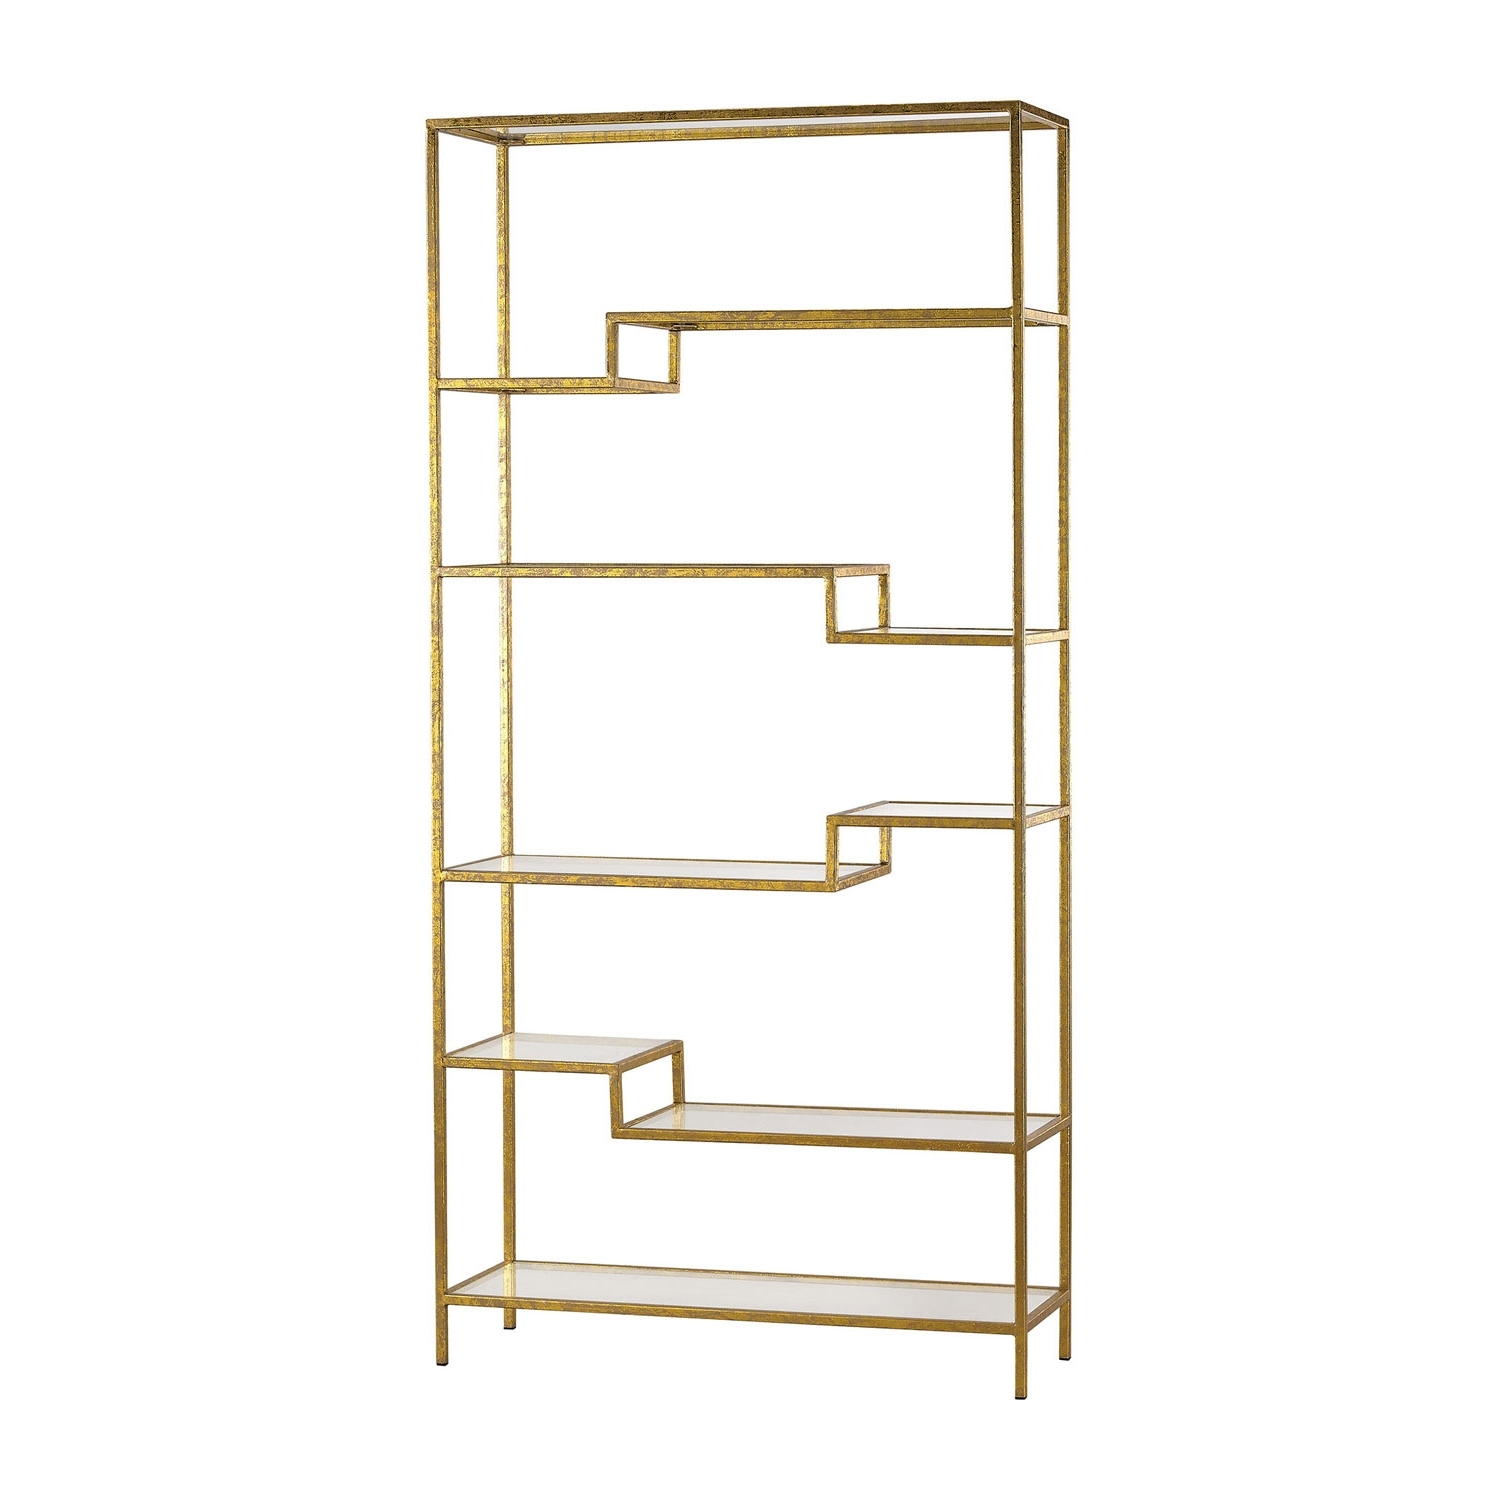 Famous Gold Mirror Shelf Sterling Industries Free Standing Shelves Intended For Gold Metal Bookcases (View 6 of 15)